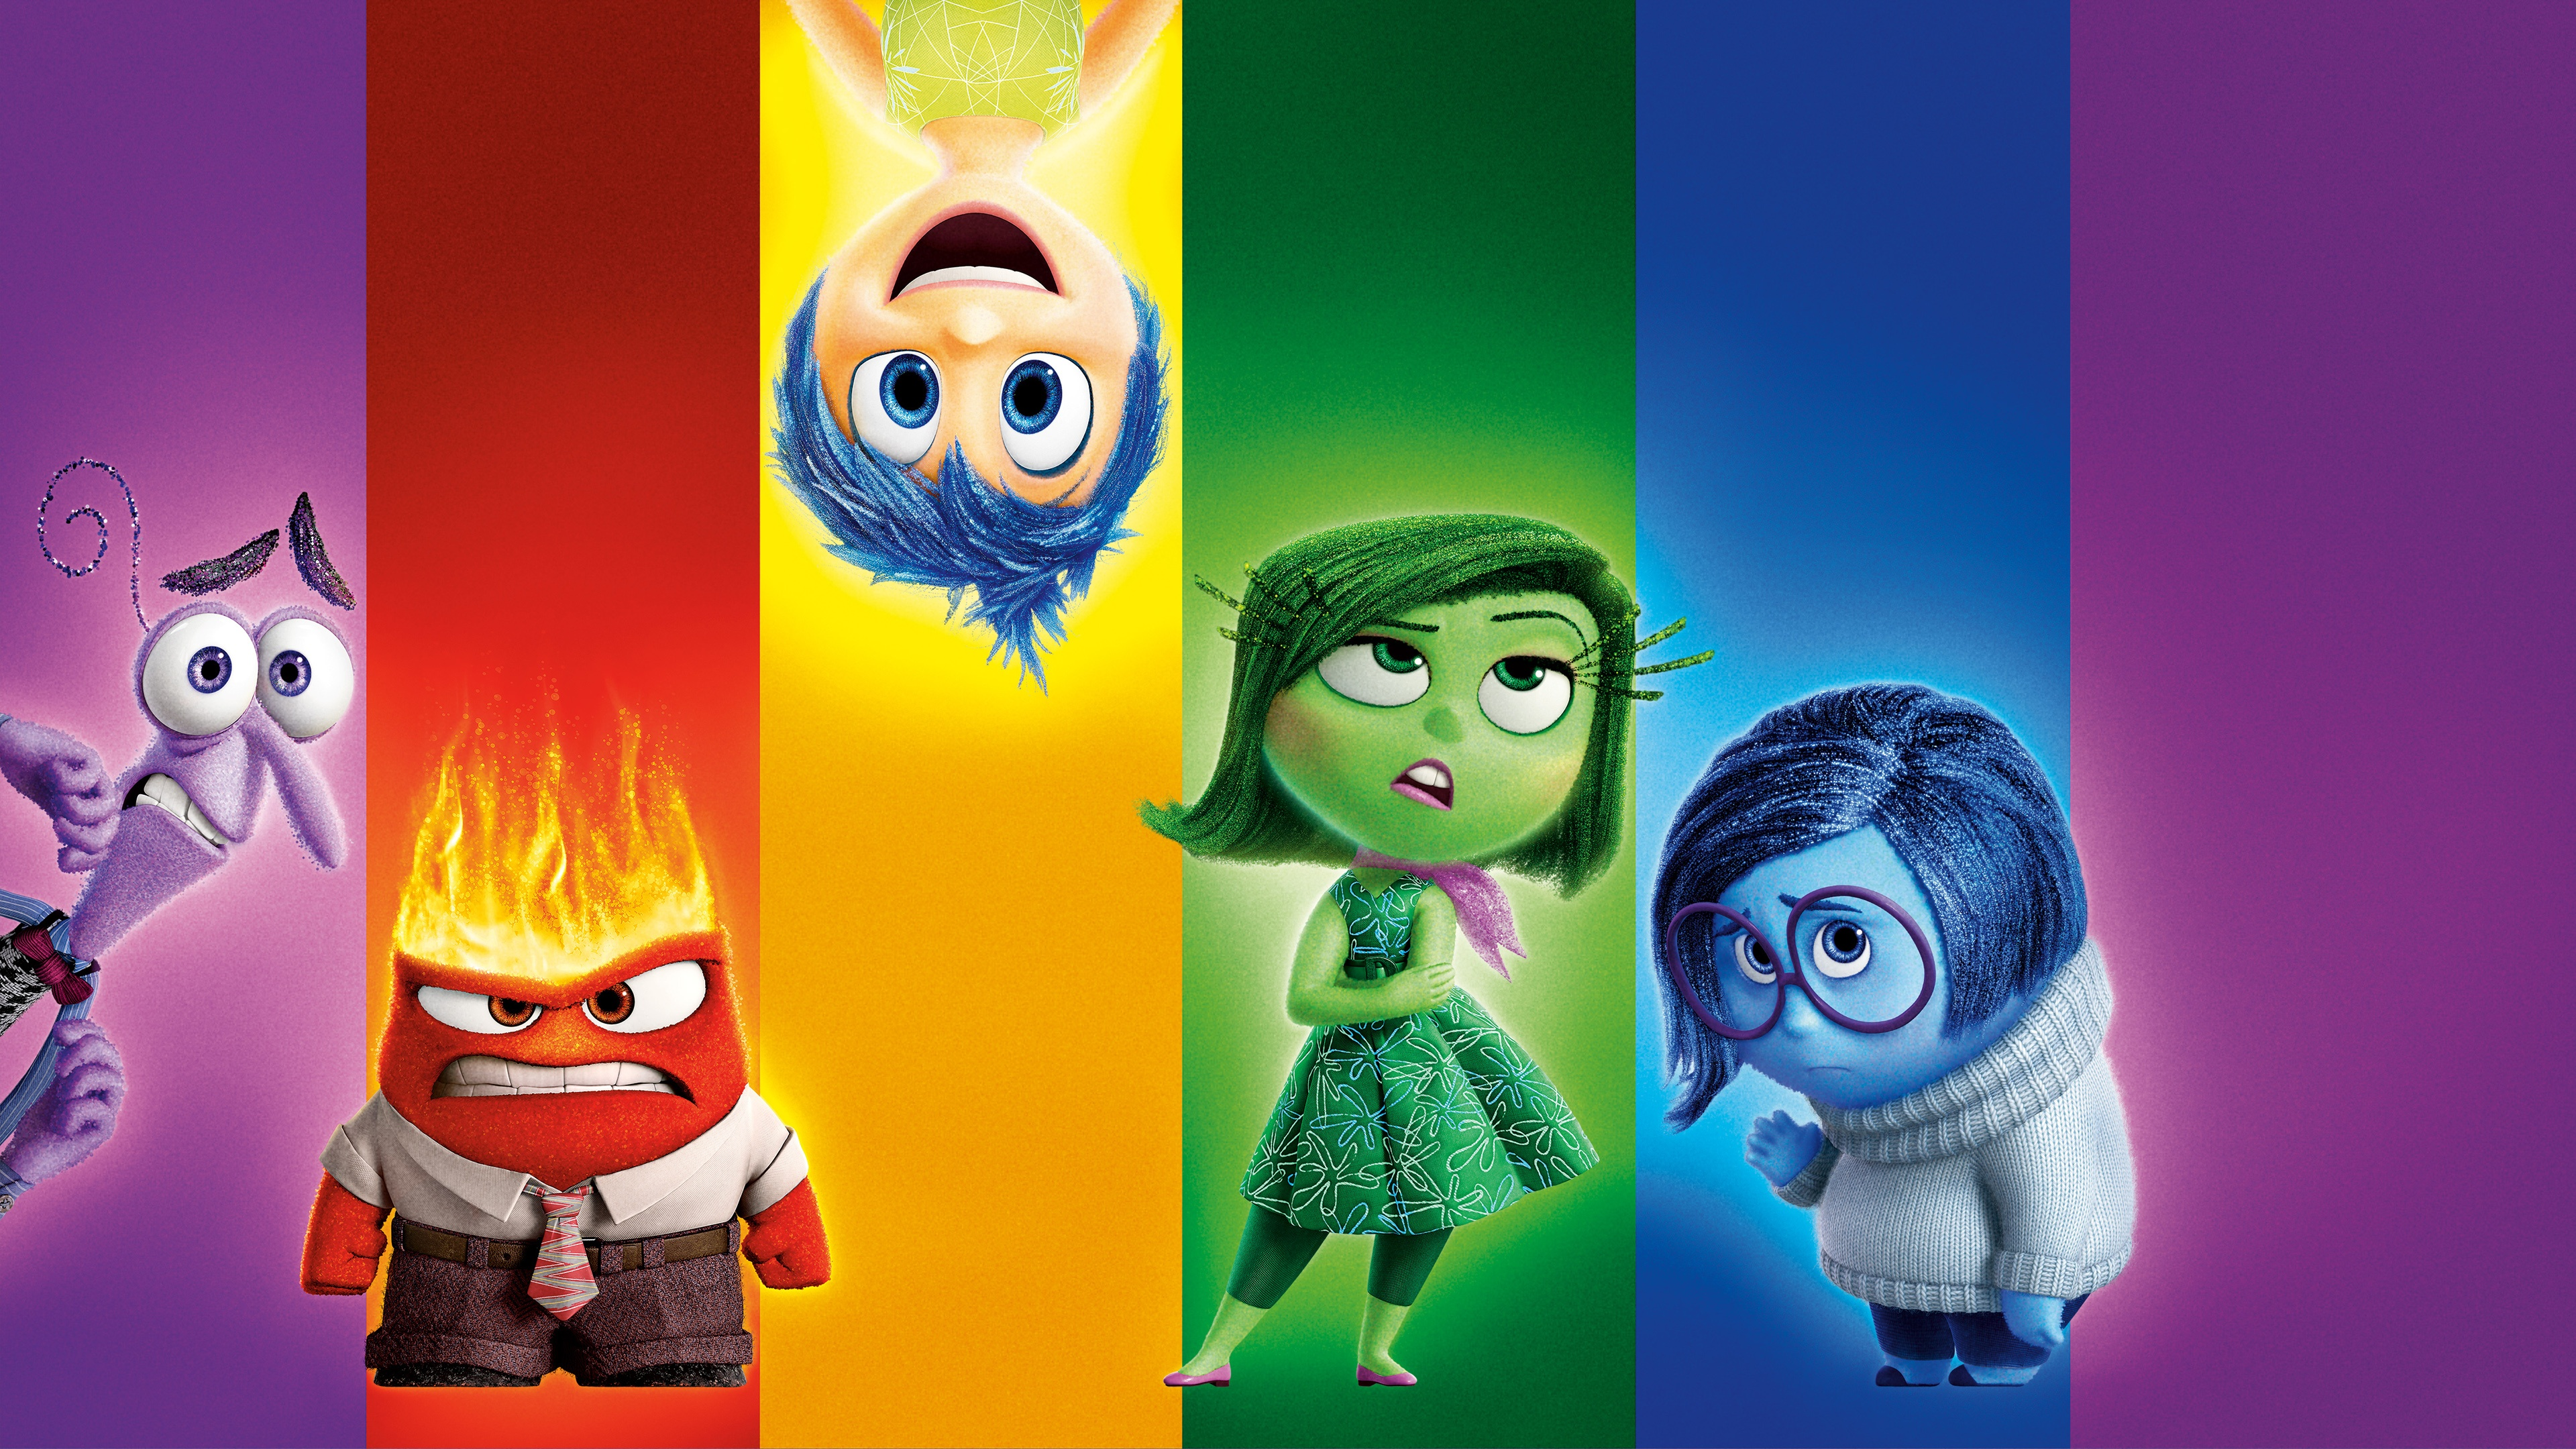 Inside Out 2015 Wallpapers In Jpg Format For Free Download